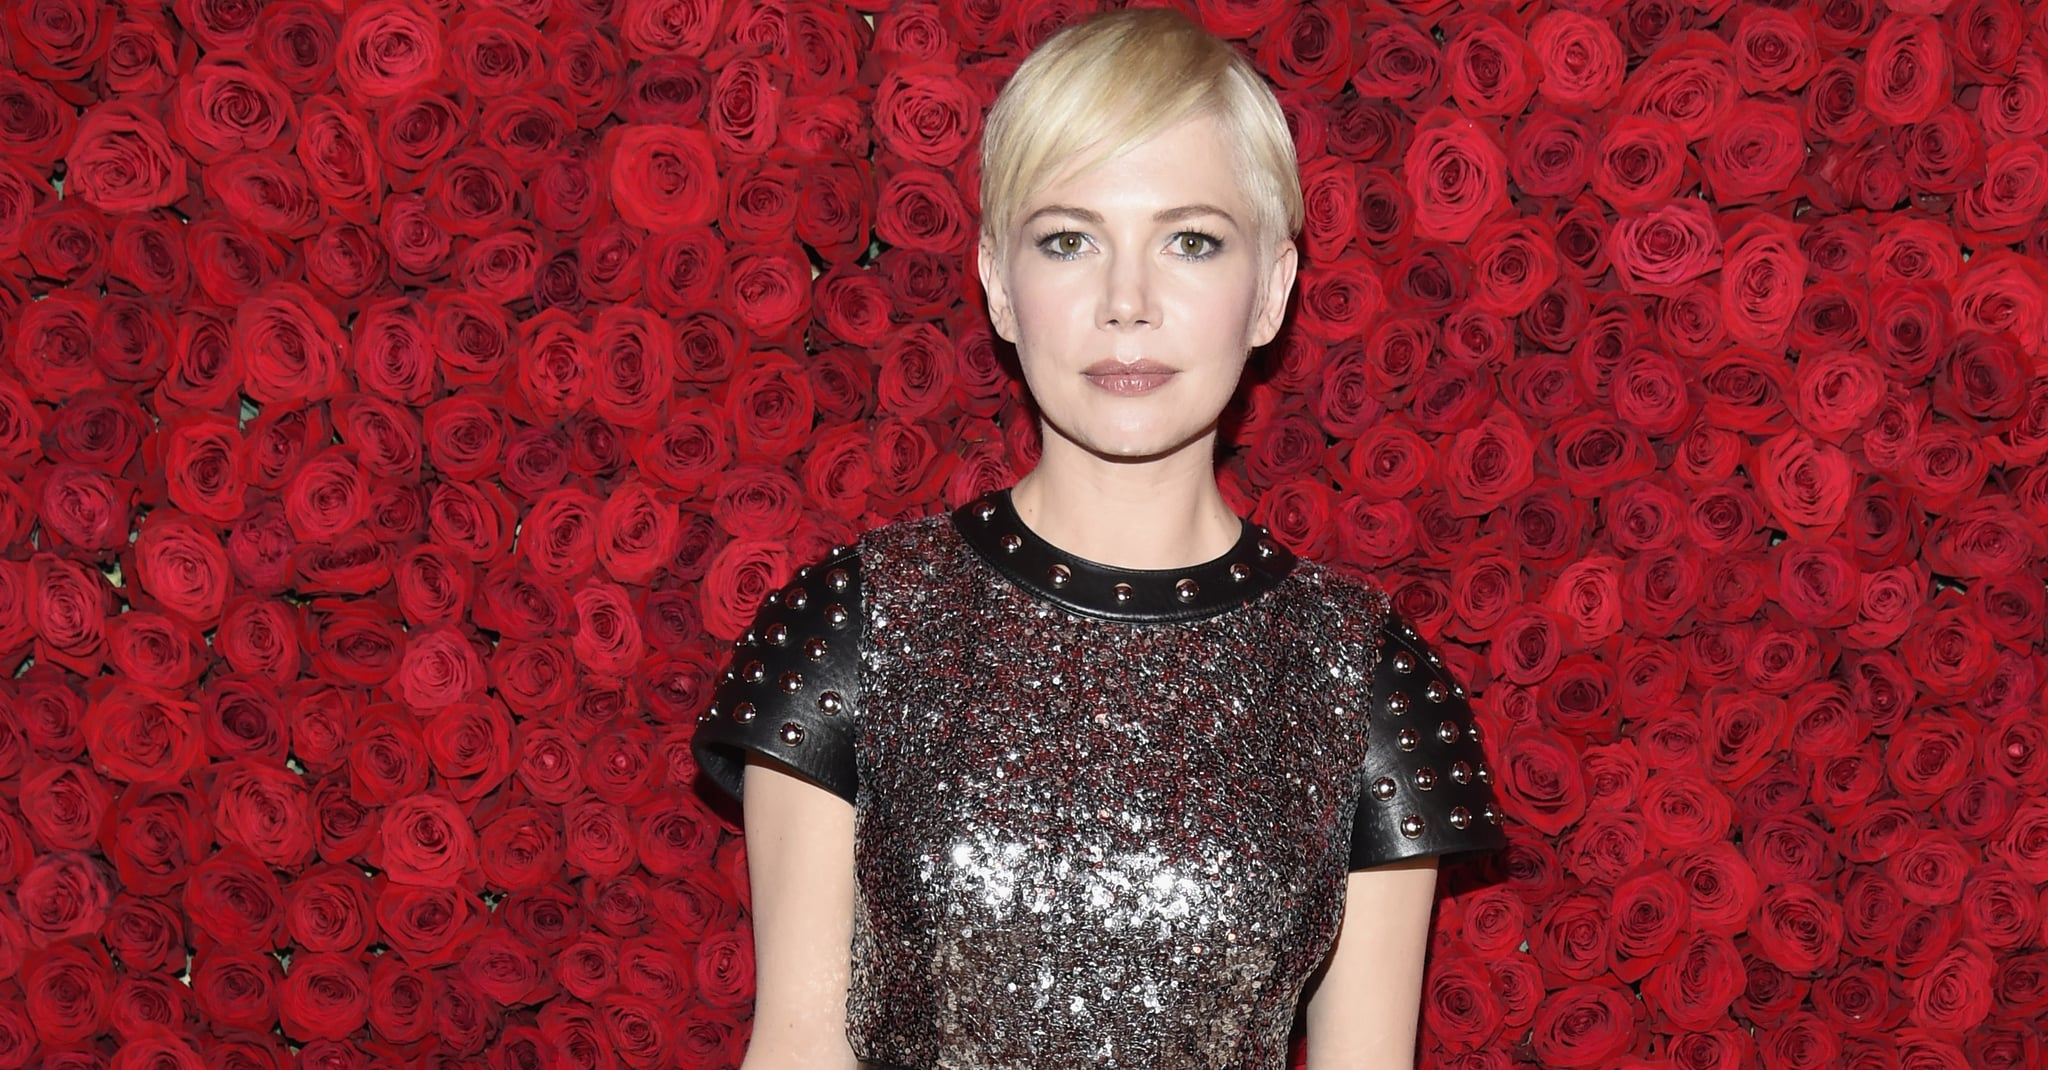 NEW YORK, NY - MAY 07: Michelle Williams attends the Heavenly Bodies: Fashion & The Catholic Imagination Costume Institute Gala at The Metropolitan Museum of Art on May 7, 2018 in New York City.  (Photo by Kevin Mazur/MG18/Getty Images for The Met Museum/Vogue)